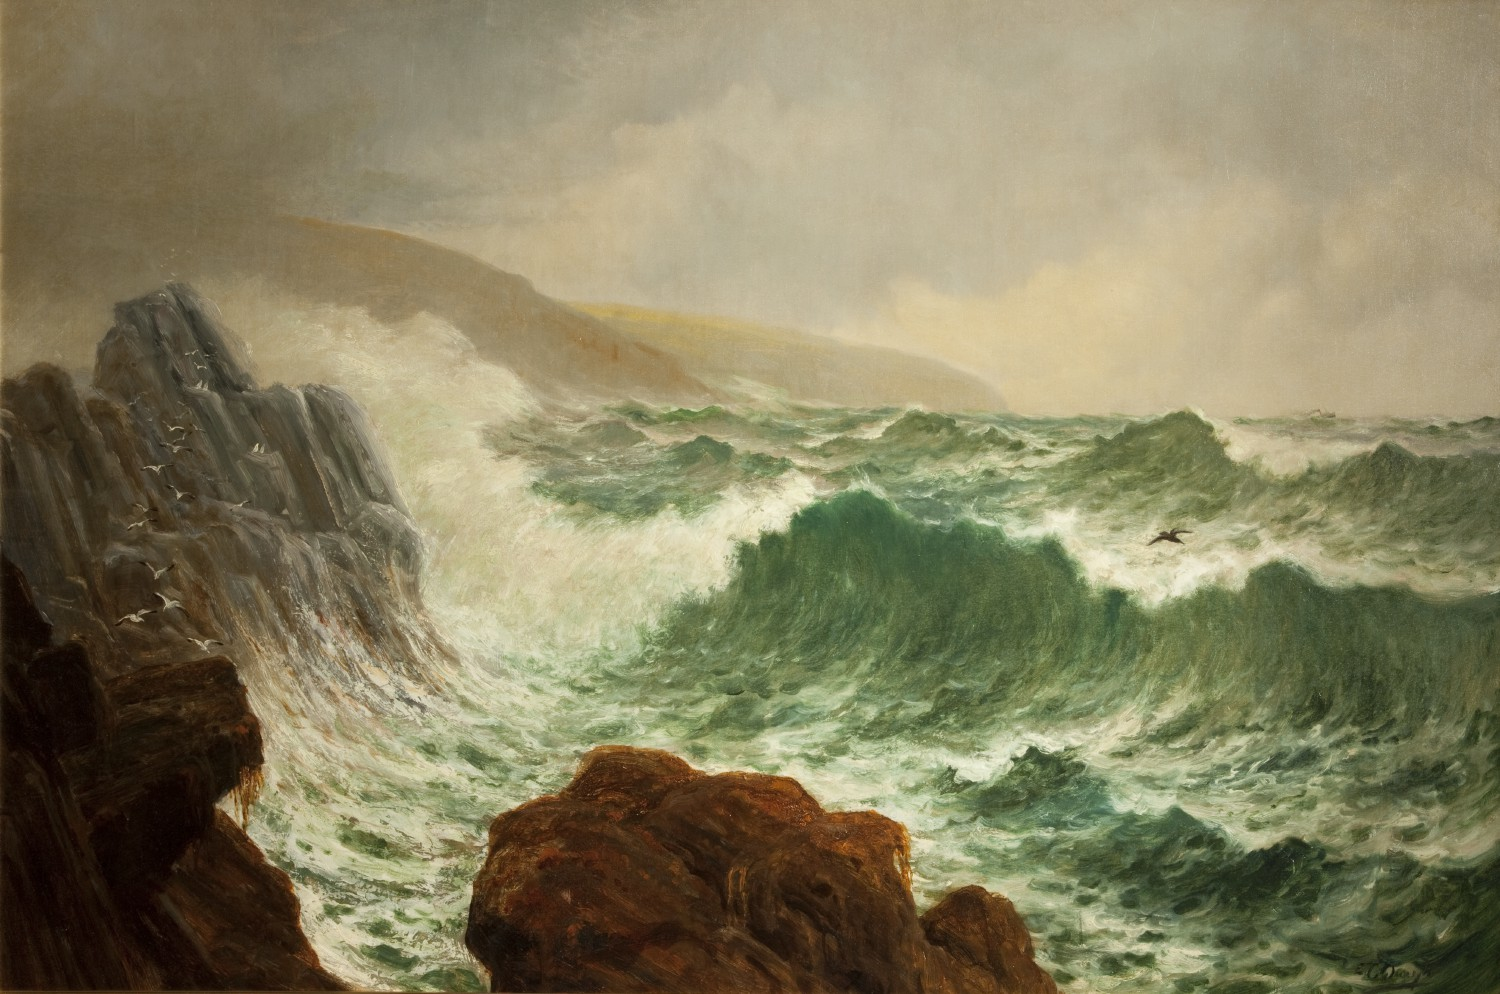 Clay Head Seascape by Edward Christian Quayle ©Manx National Heritage (1954-5951)